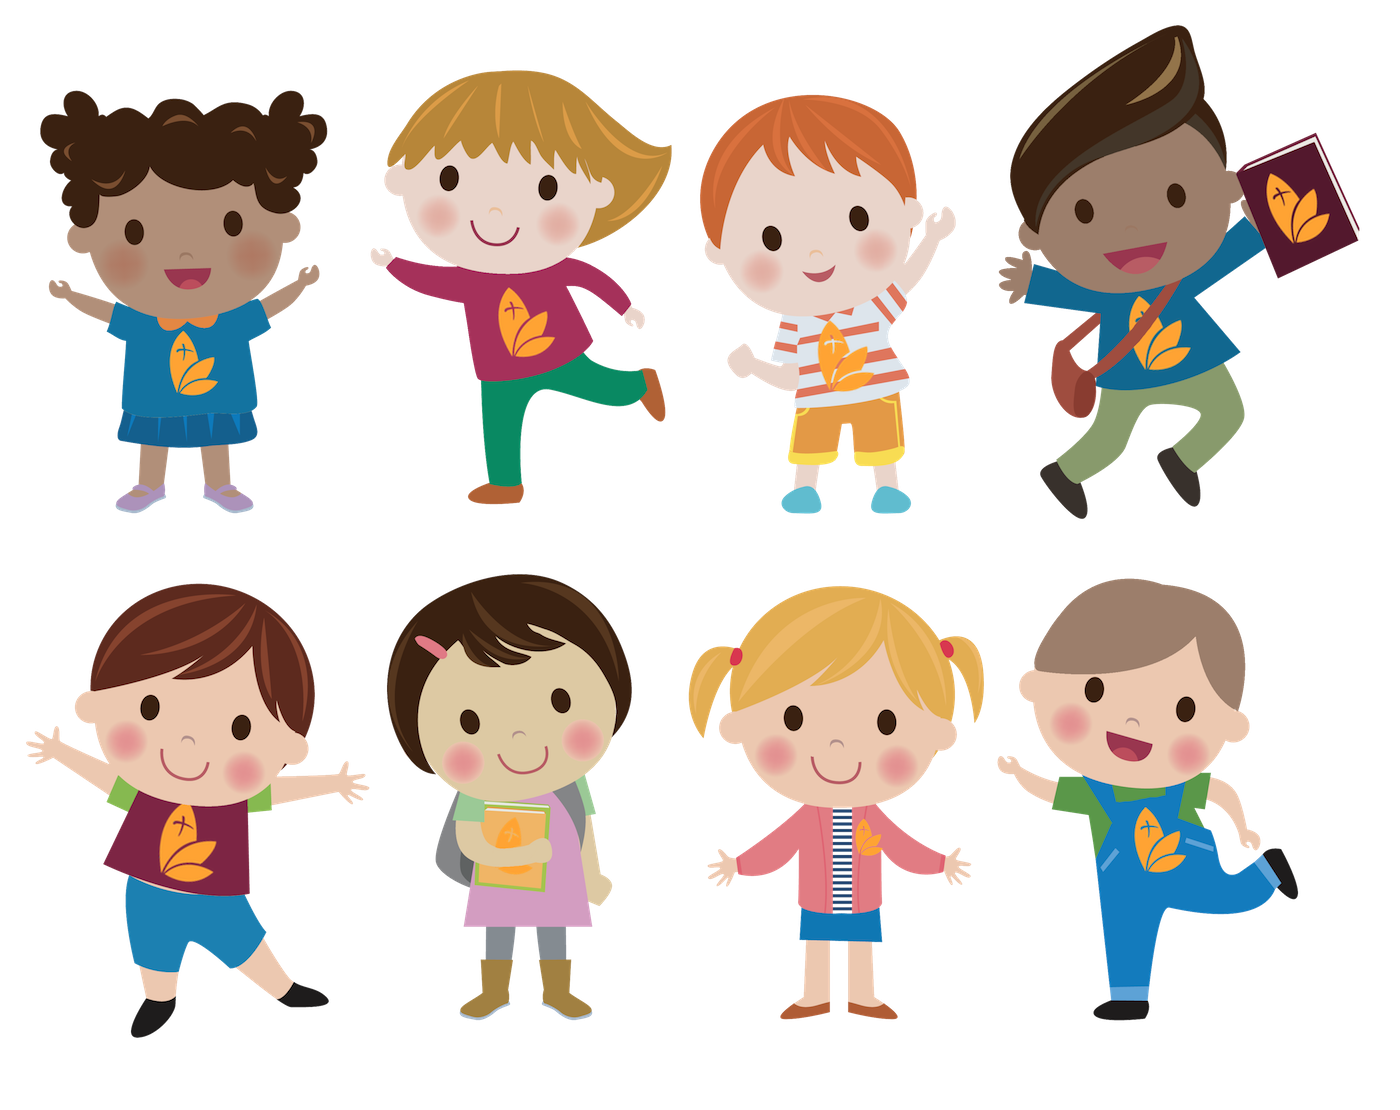 RCL Worship Resources For Kids Characters (Creativity Article)